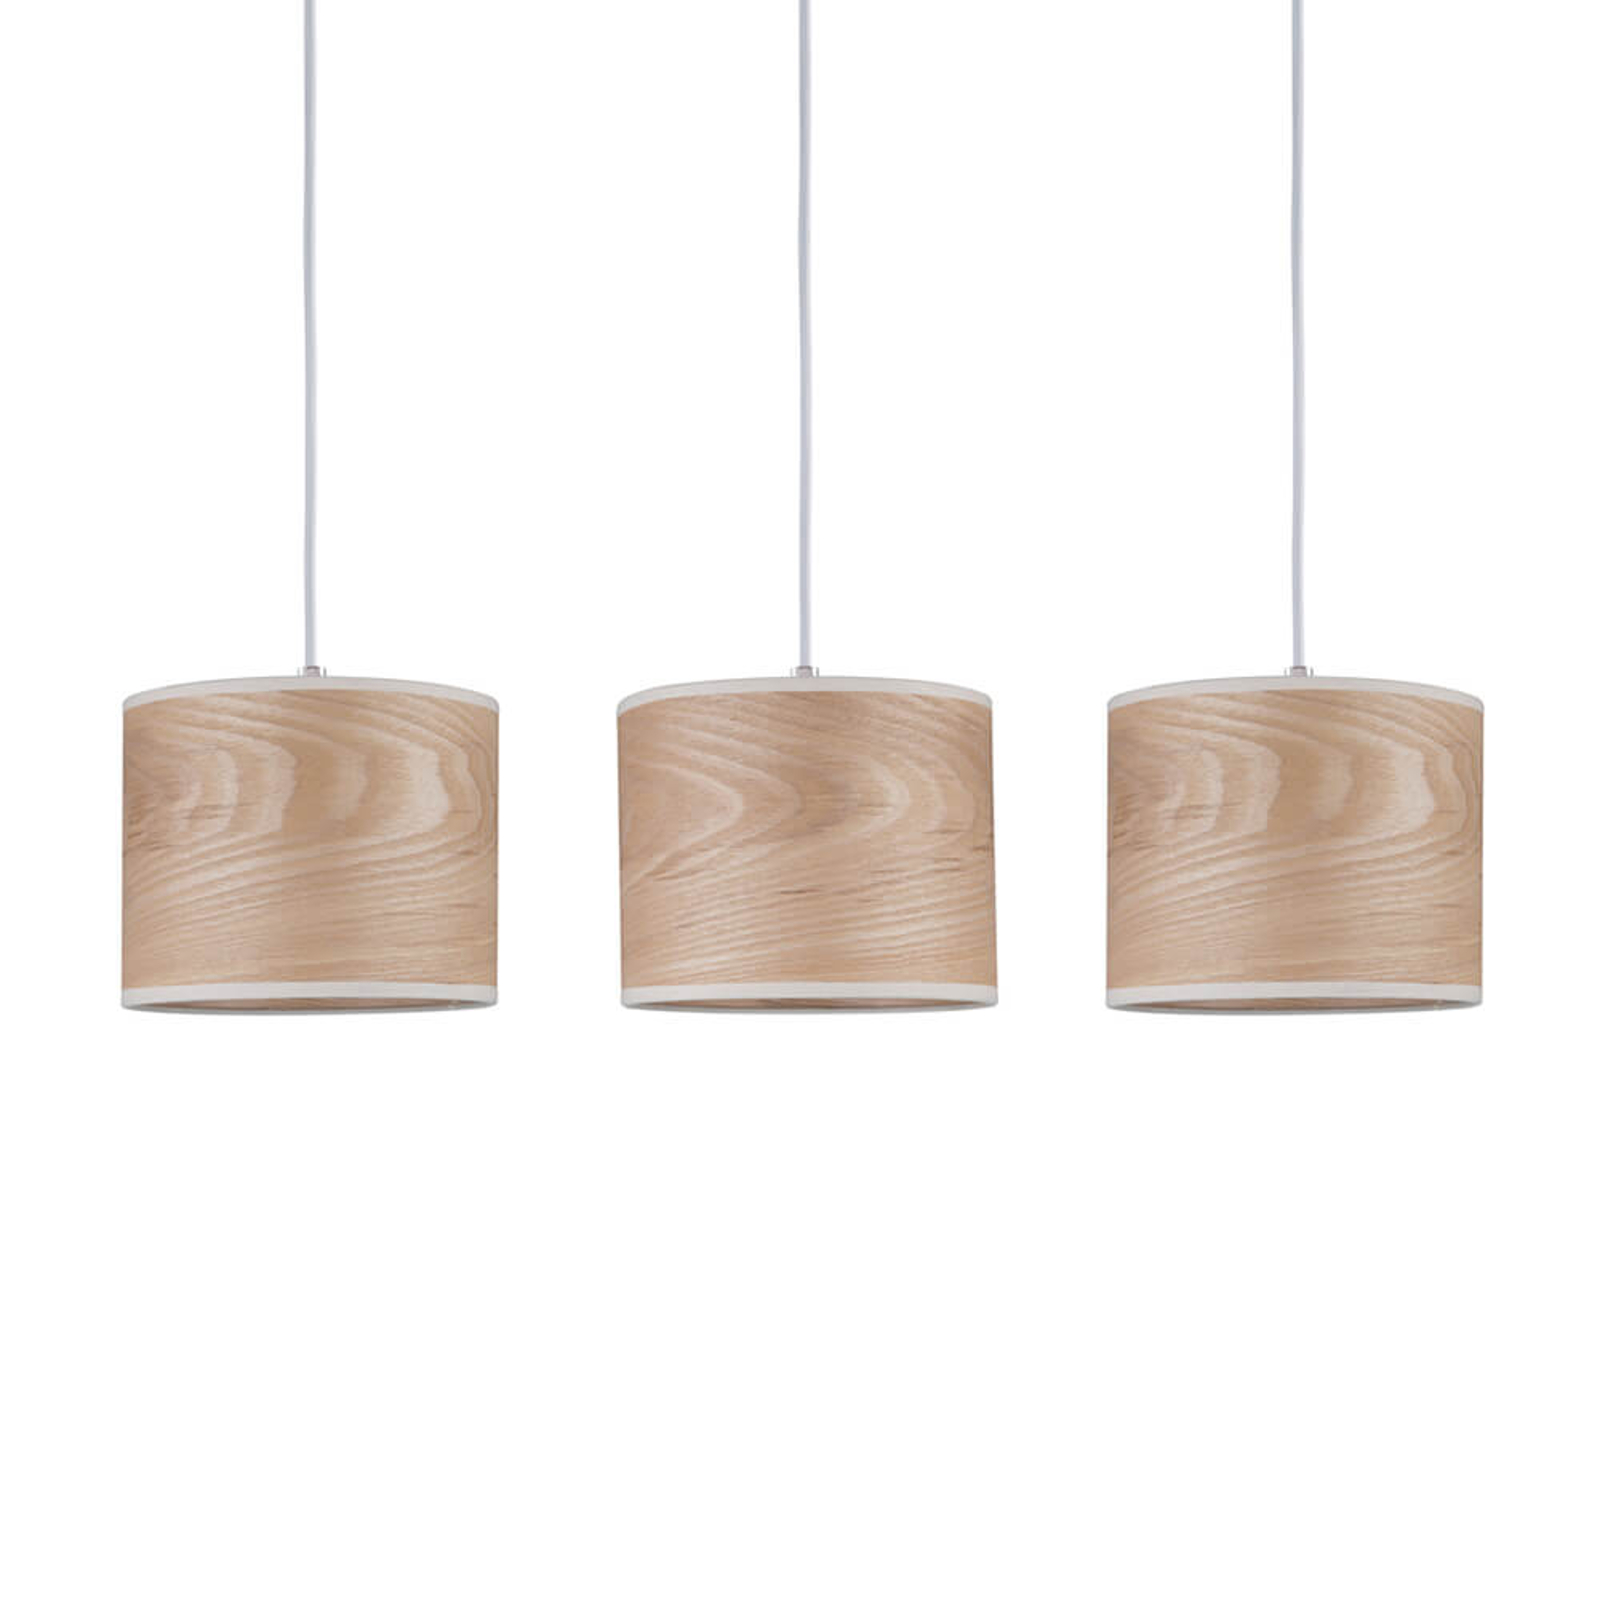 Suspension à 3 lampes Neta au design naturel